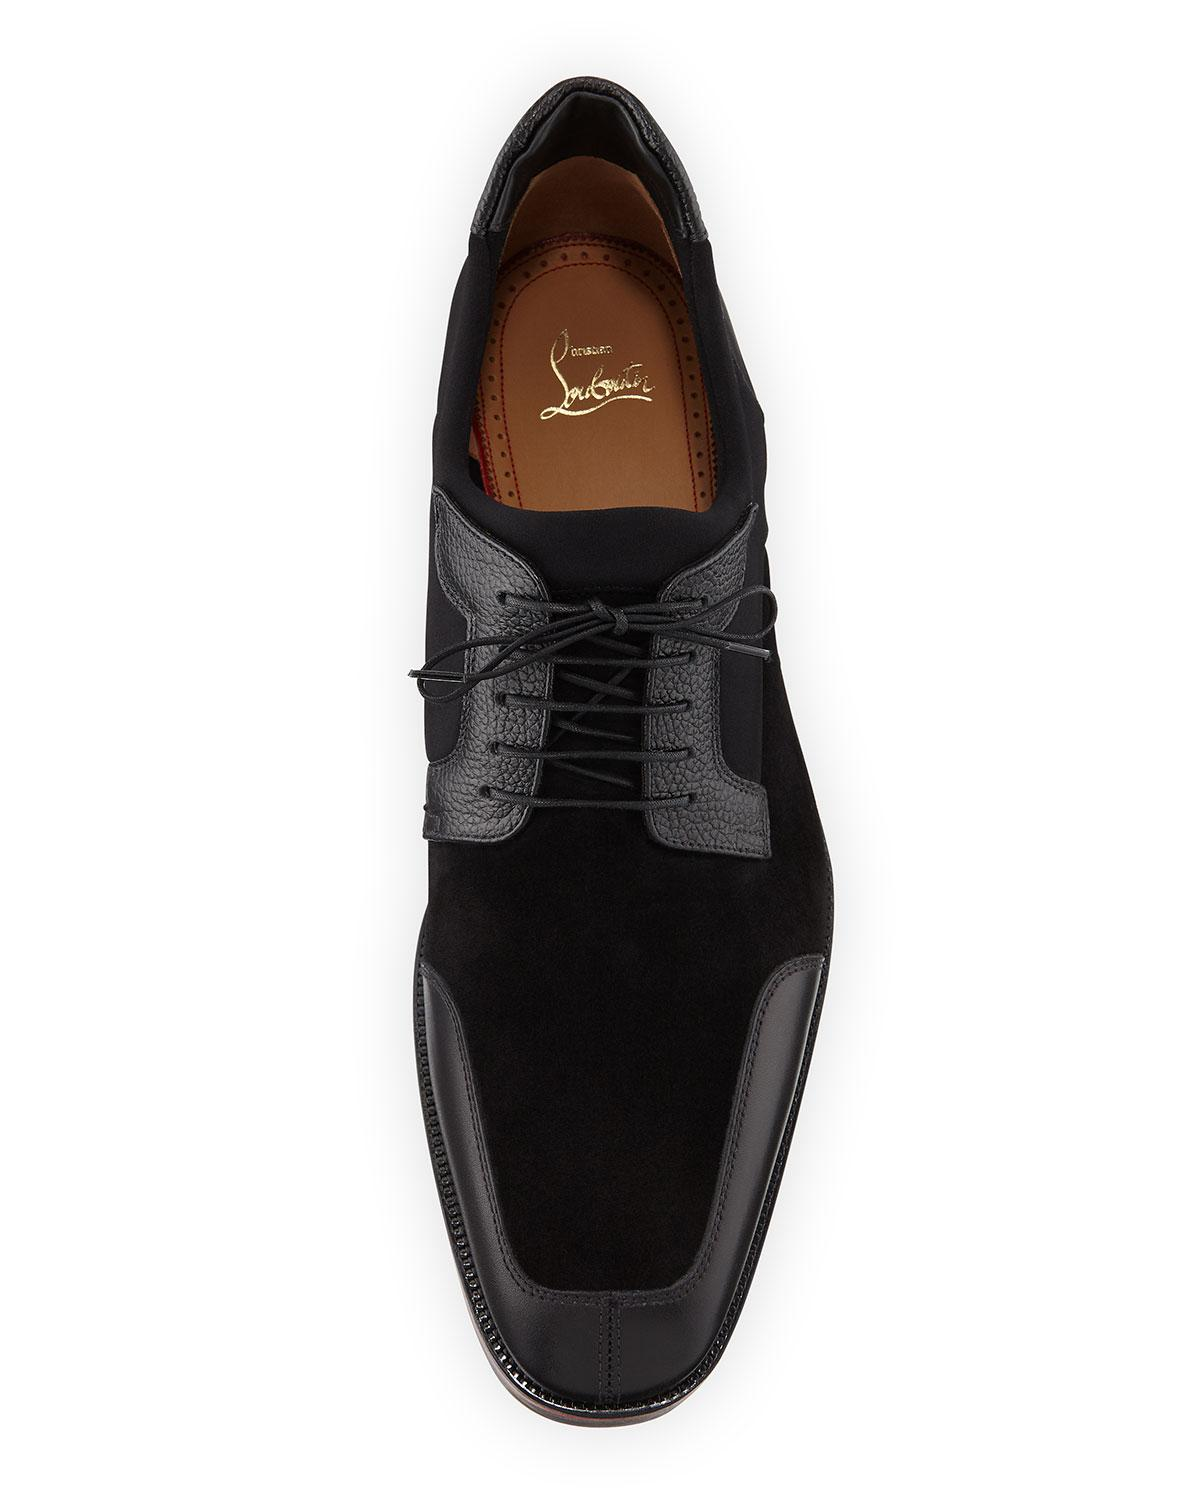 556d578c2f0 Lyst - Christian Louboutin Men s Simon Neoprene leather Lace-up Shoes in  Black for Men